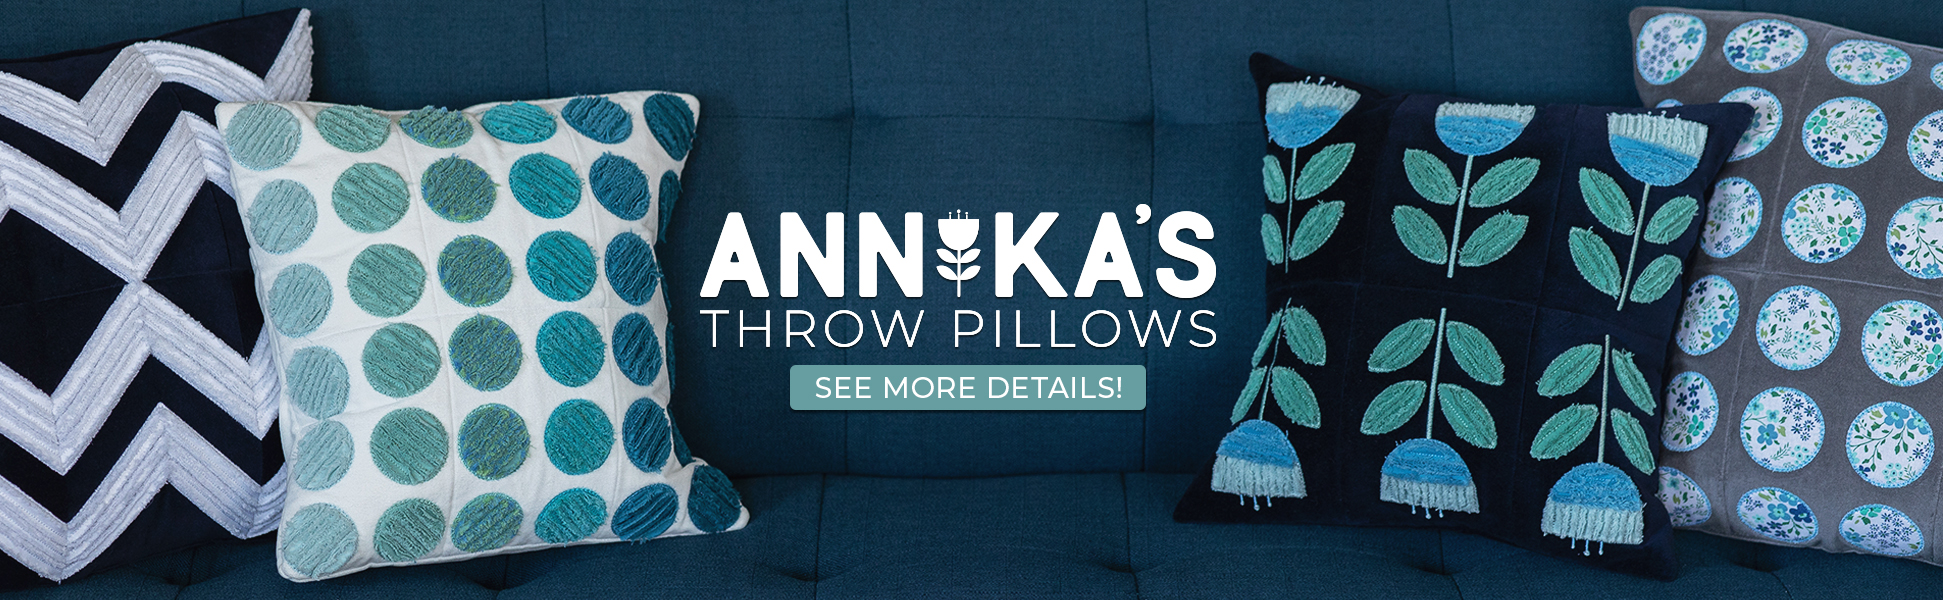 Annika's Throw Pillows